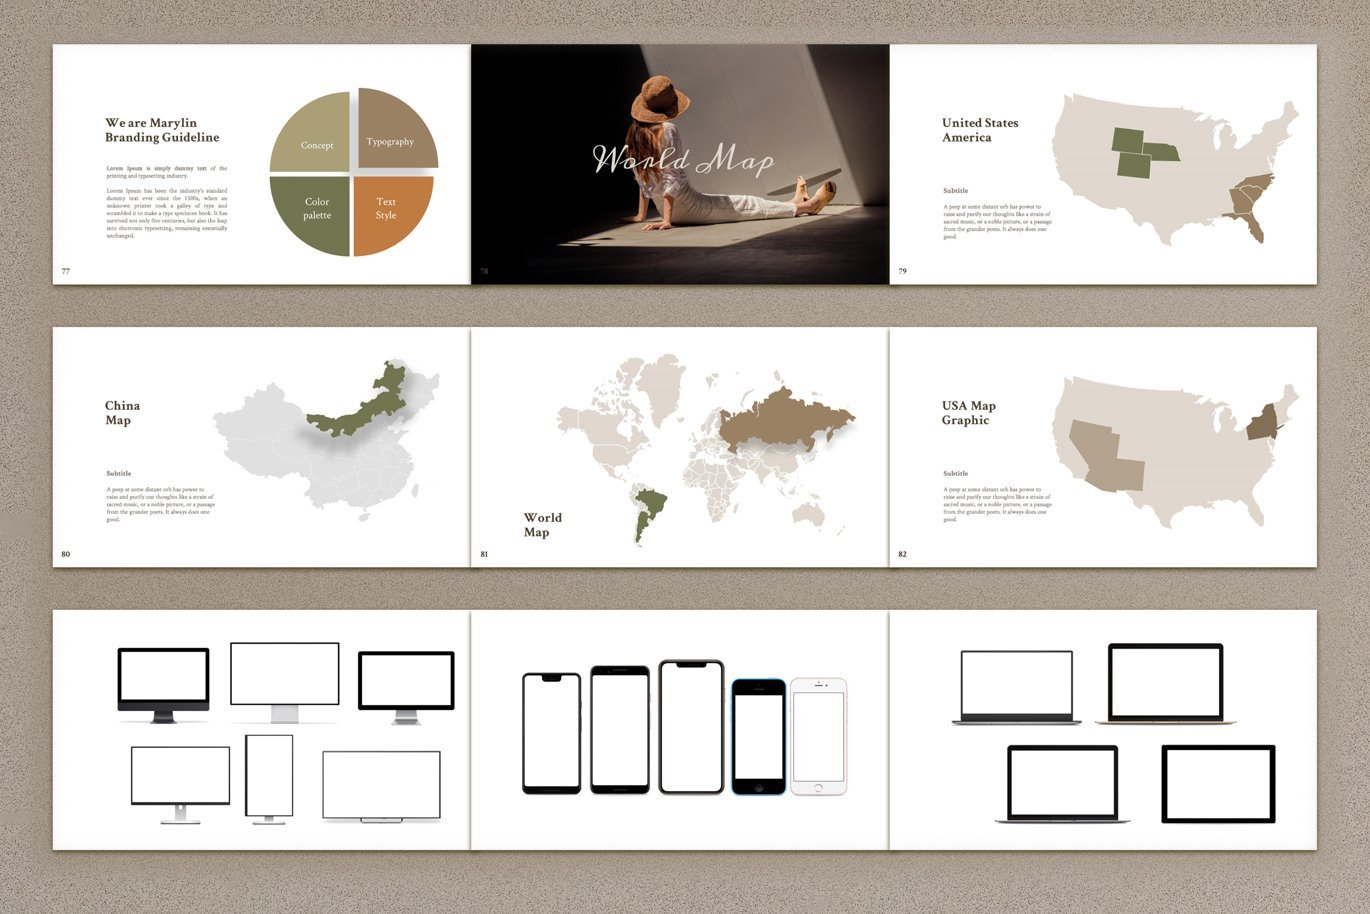 There are many maps which you can include to your presentation.